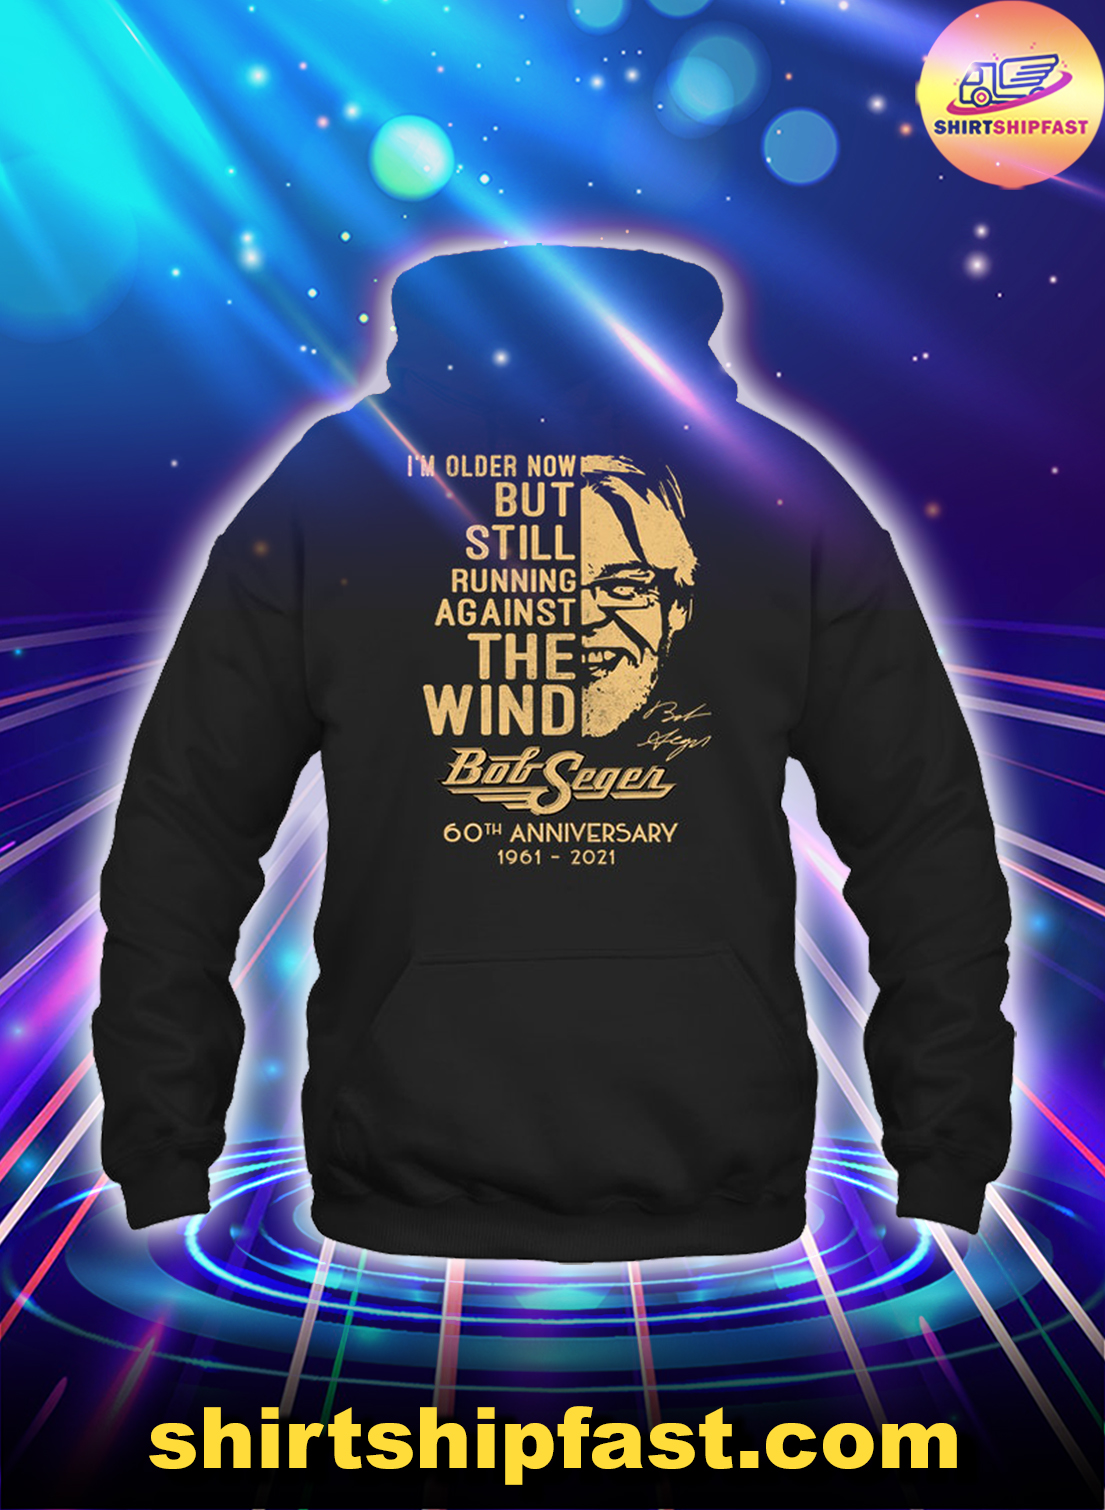 I'm older now but still running against the wind Bob Seger 60th anniversary hoodie